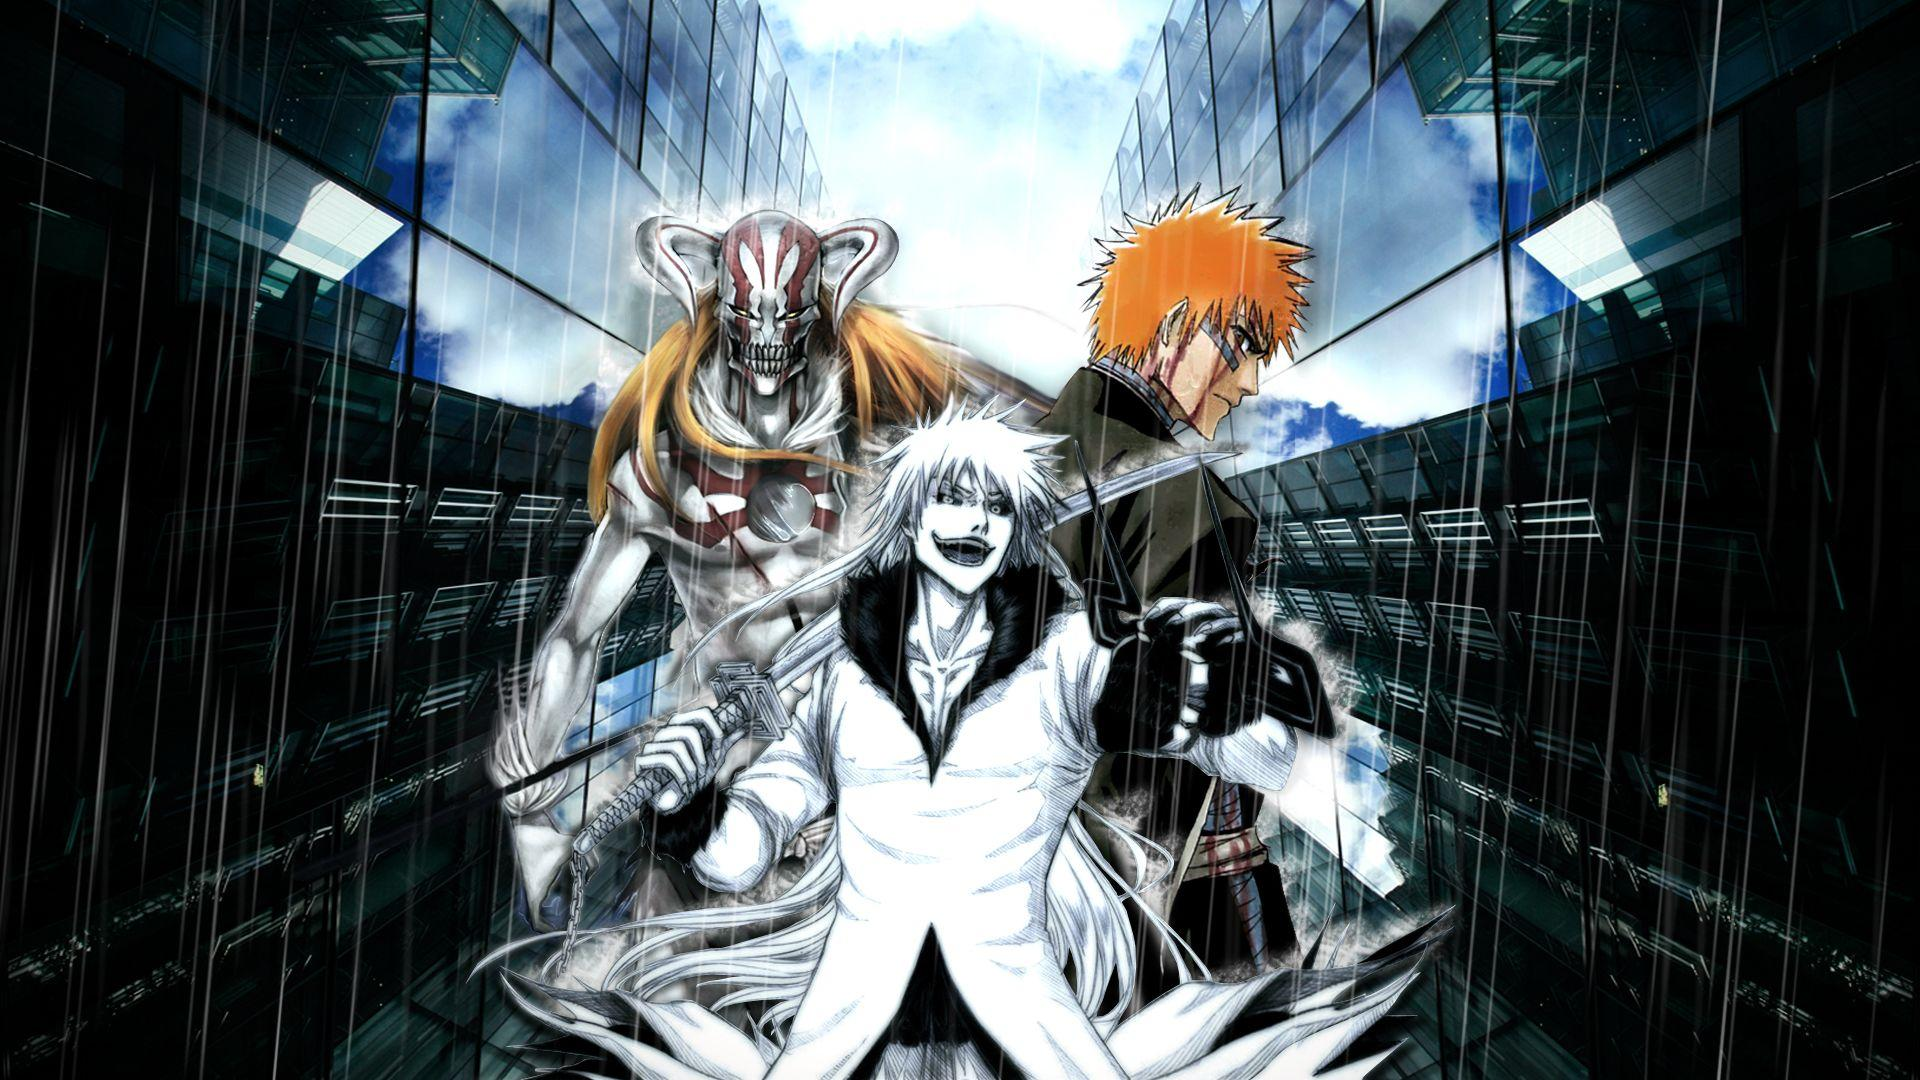 bleach Full HD Wallpapers and Backgrounds Image